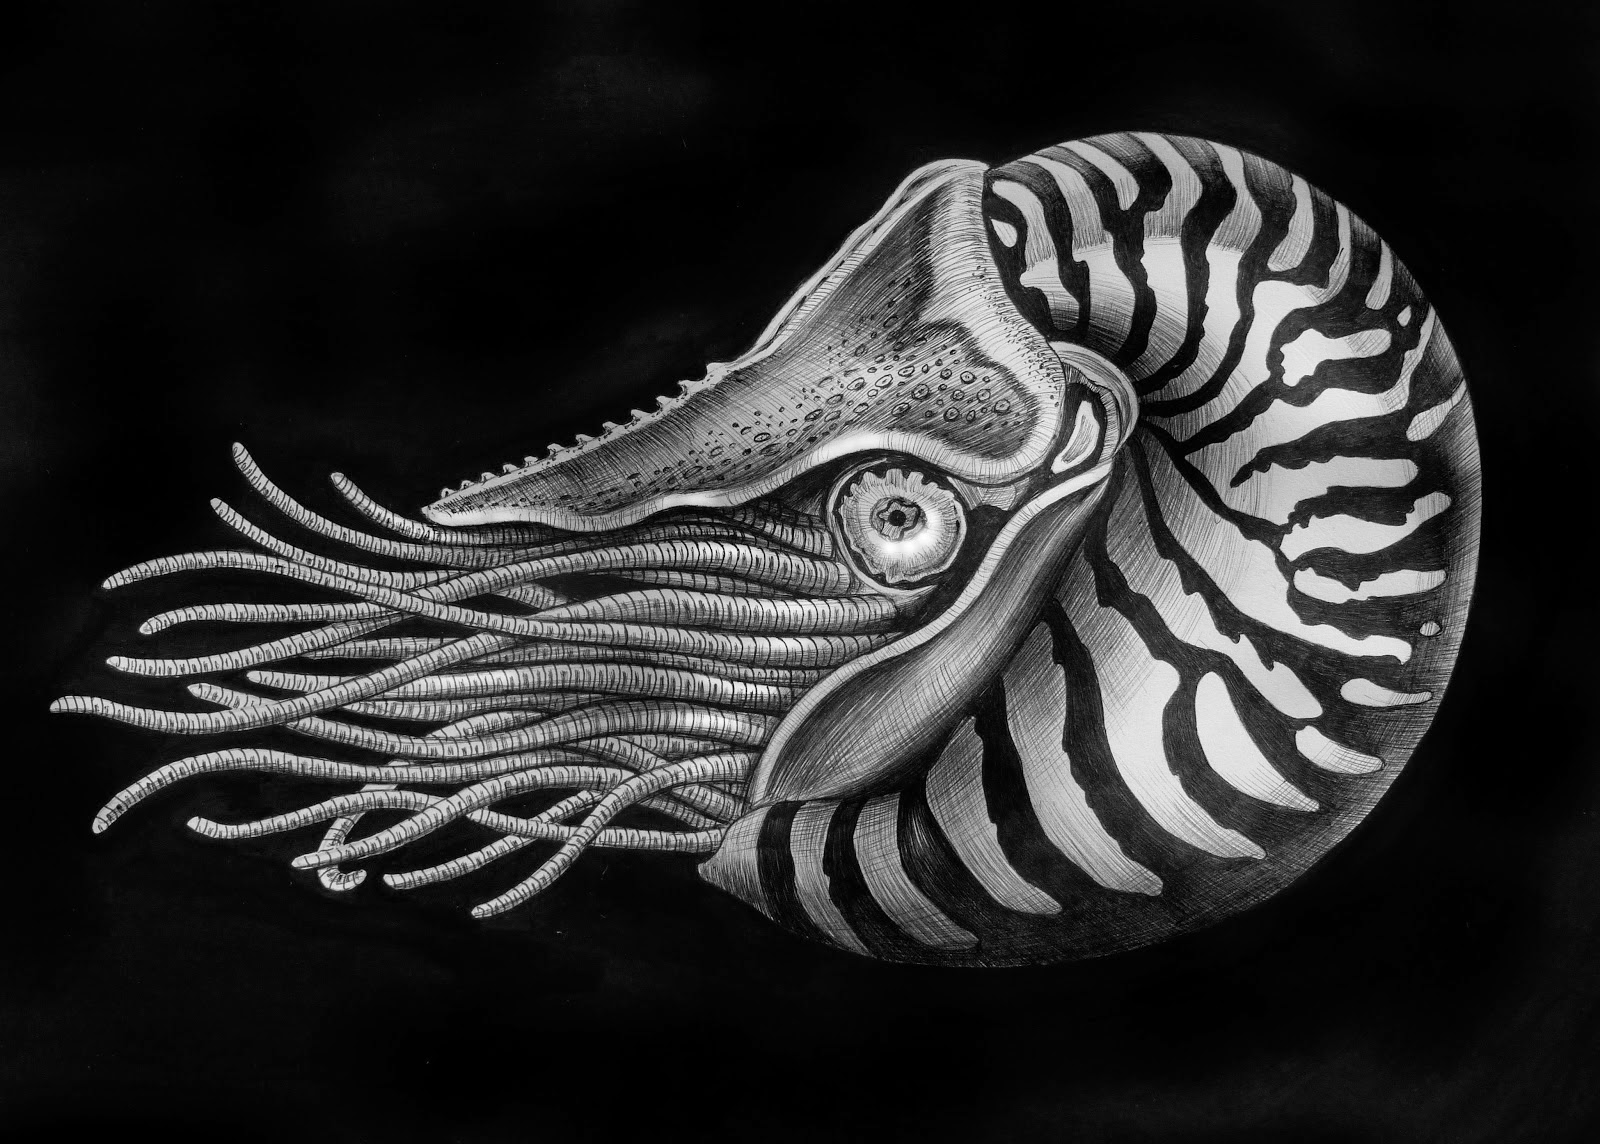 07-Nautilus-Tim-Jeffs-All-Creatures-Great-and-Small-Ink-Drawings-www-designstack-co